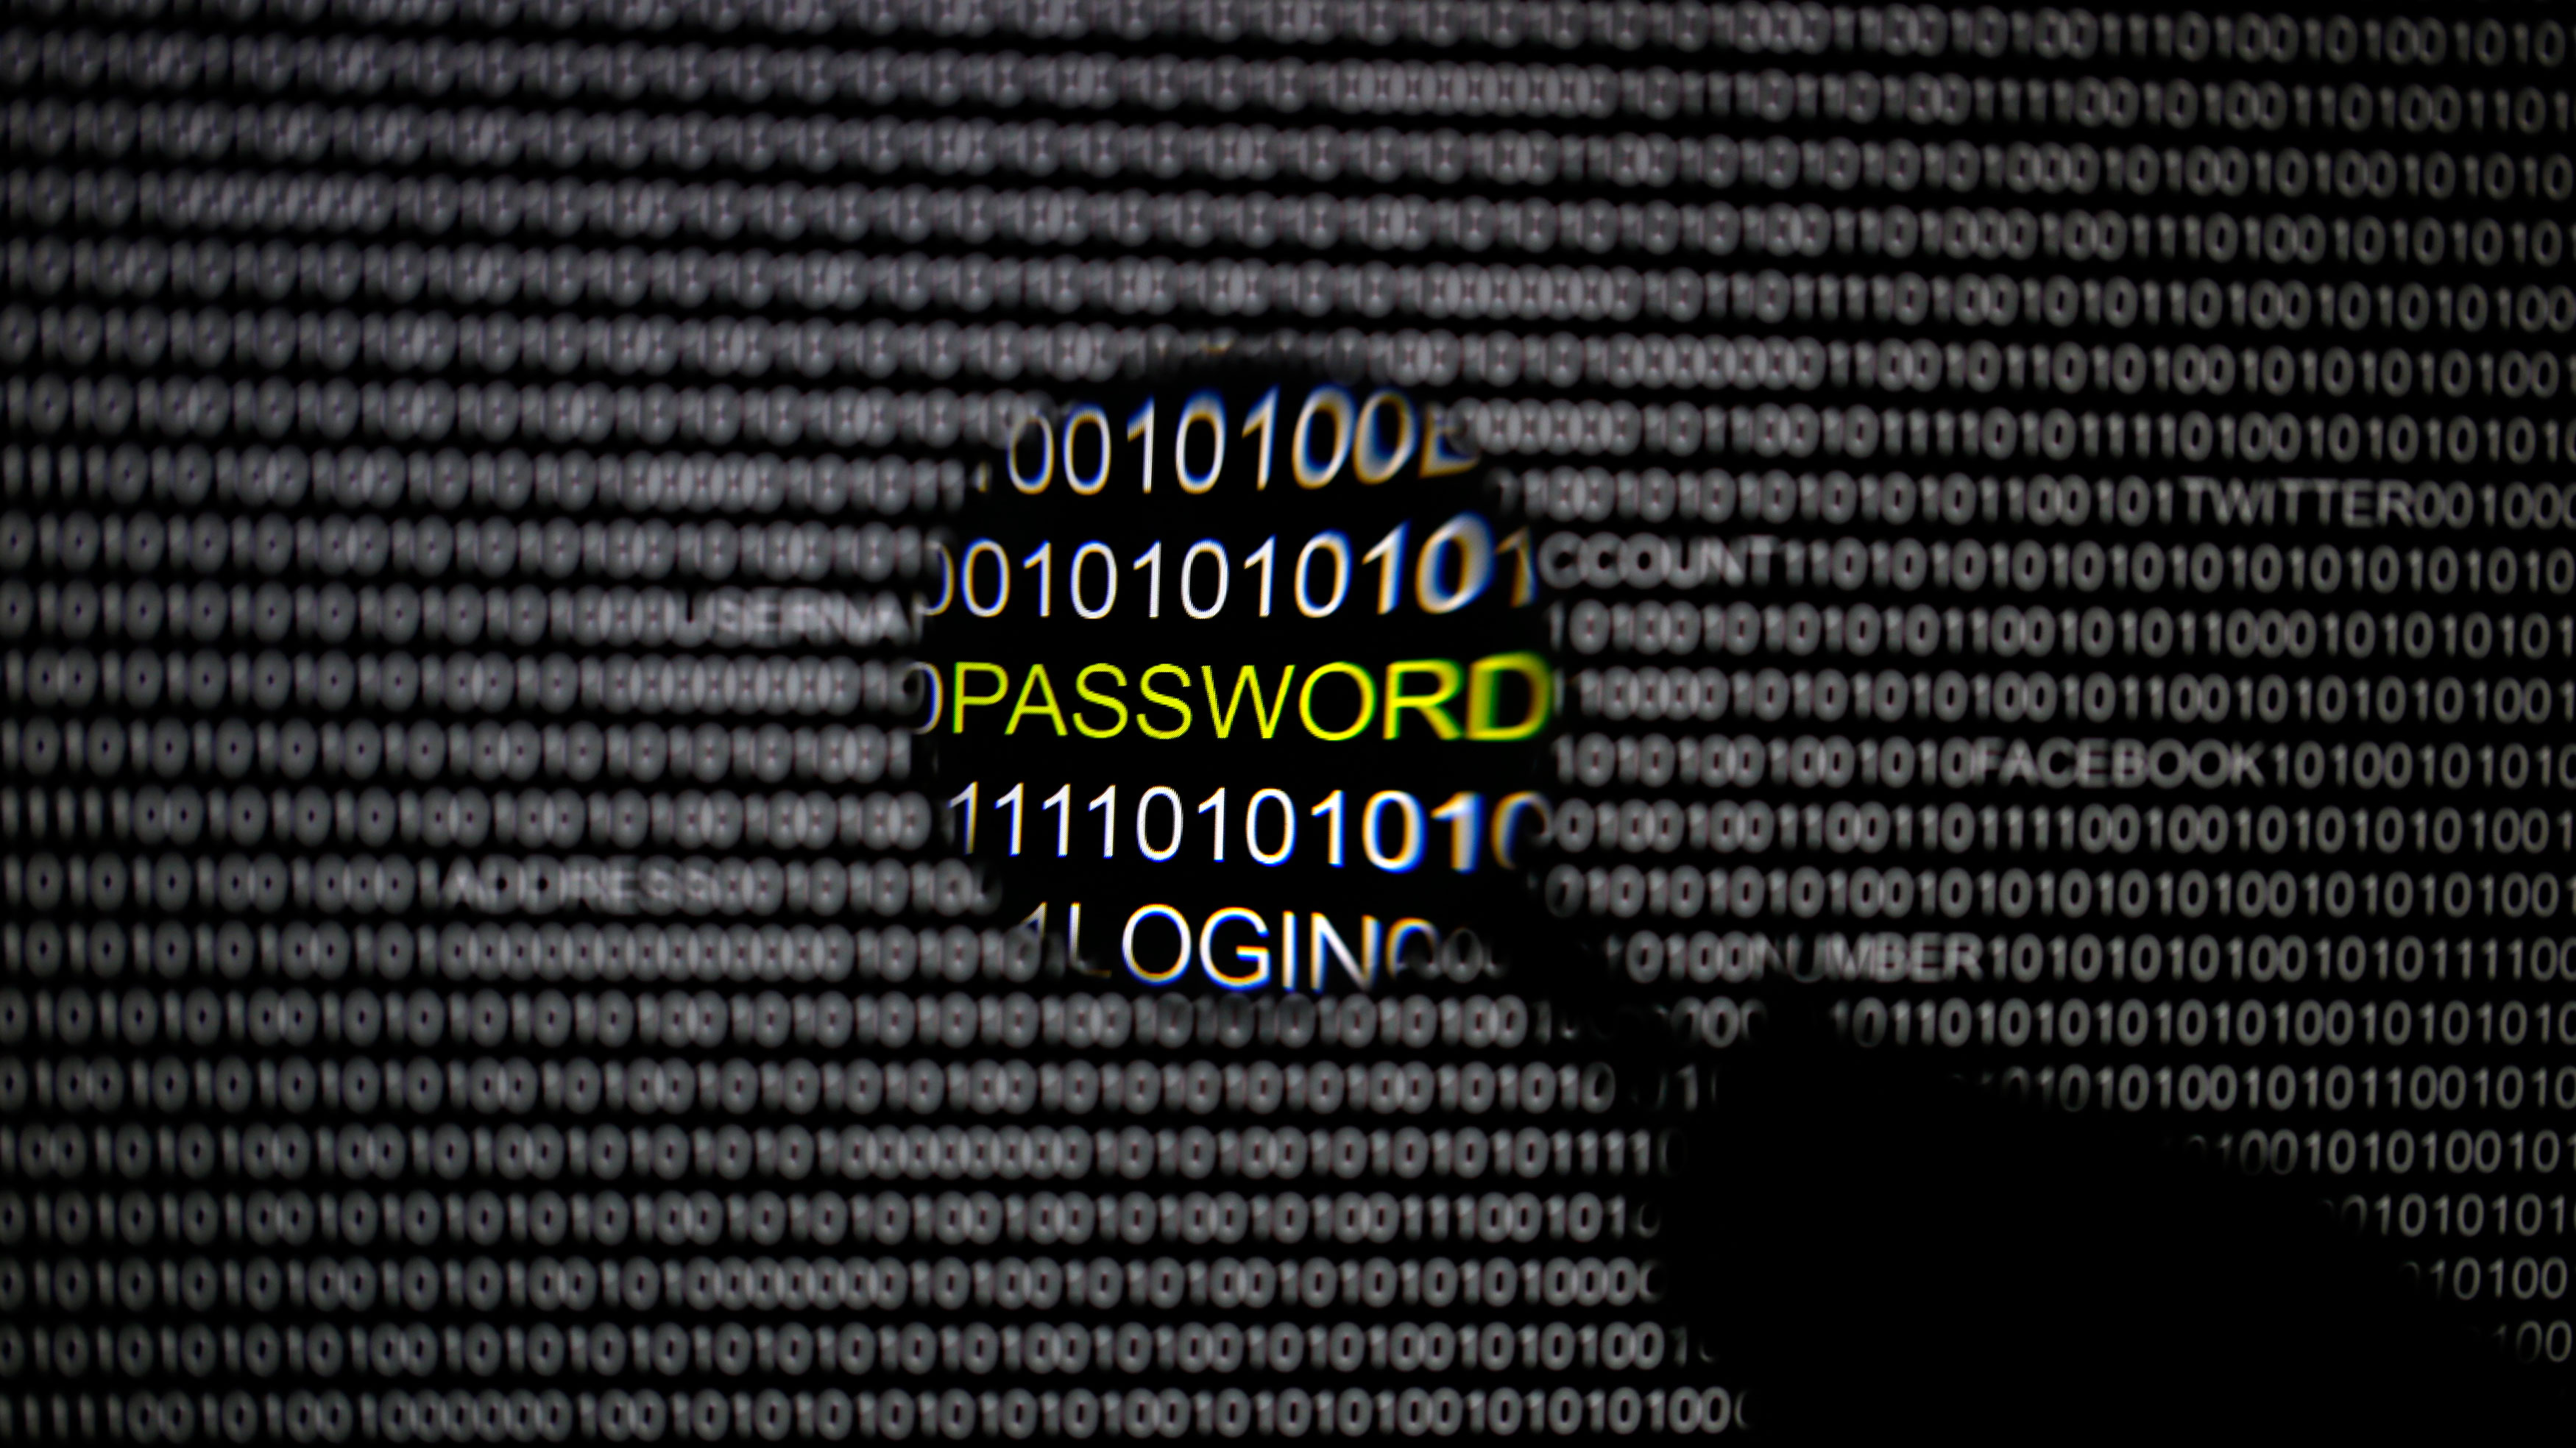 security breach password email user